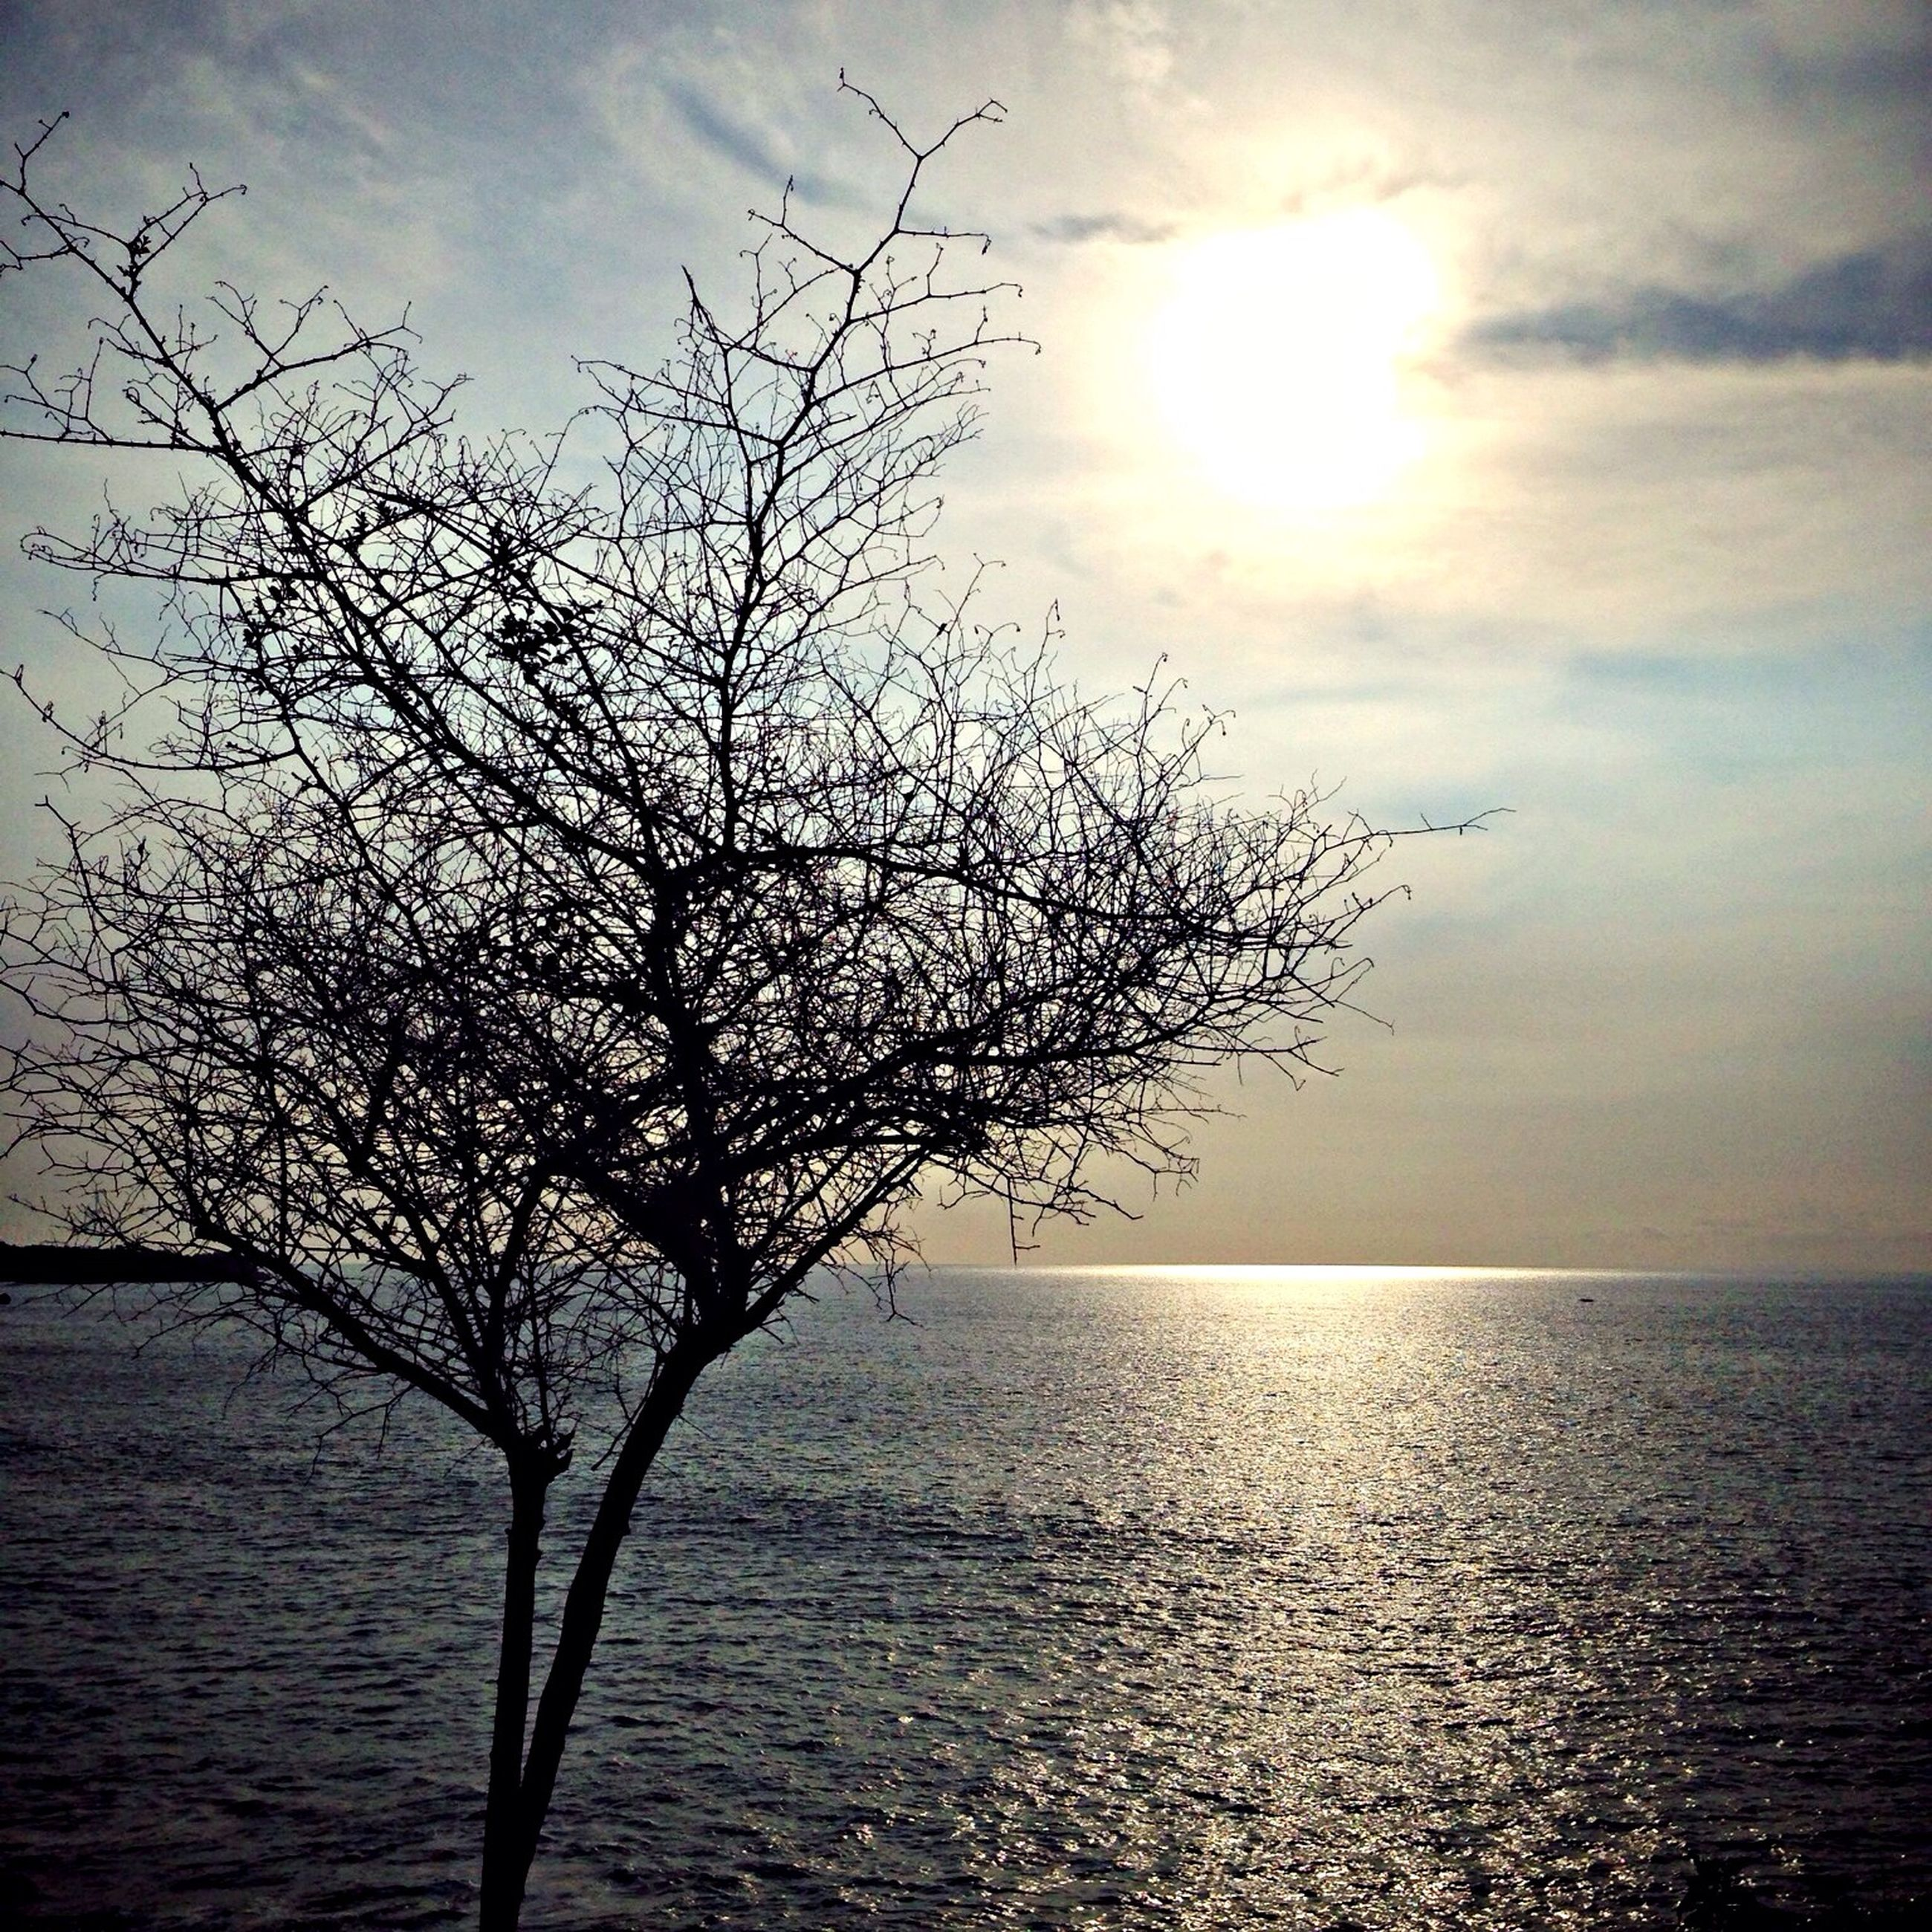 water, horizon over water, sky, sea, tranquil scene, tranquility, beauty in nature, scenics, branch, nature, tree, sunset, sun, bare tree, cloud - sky, silhouette, cloud, idyllic, outdoors, no people